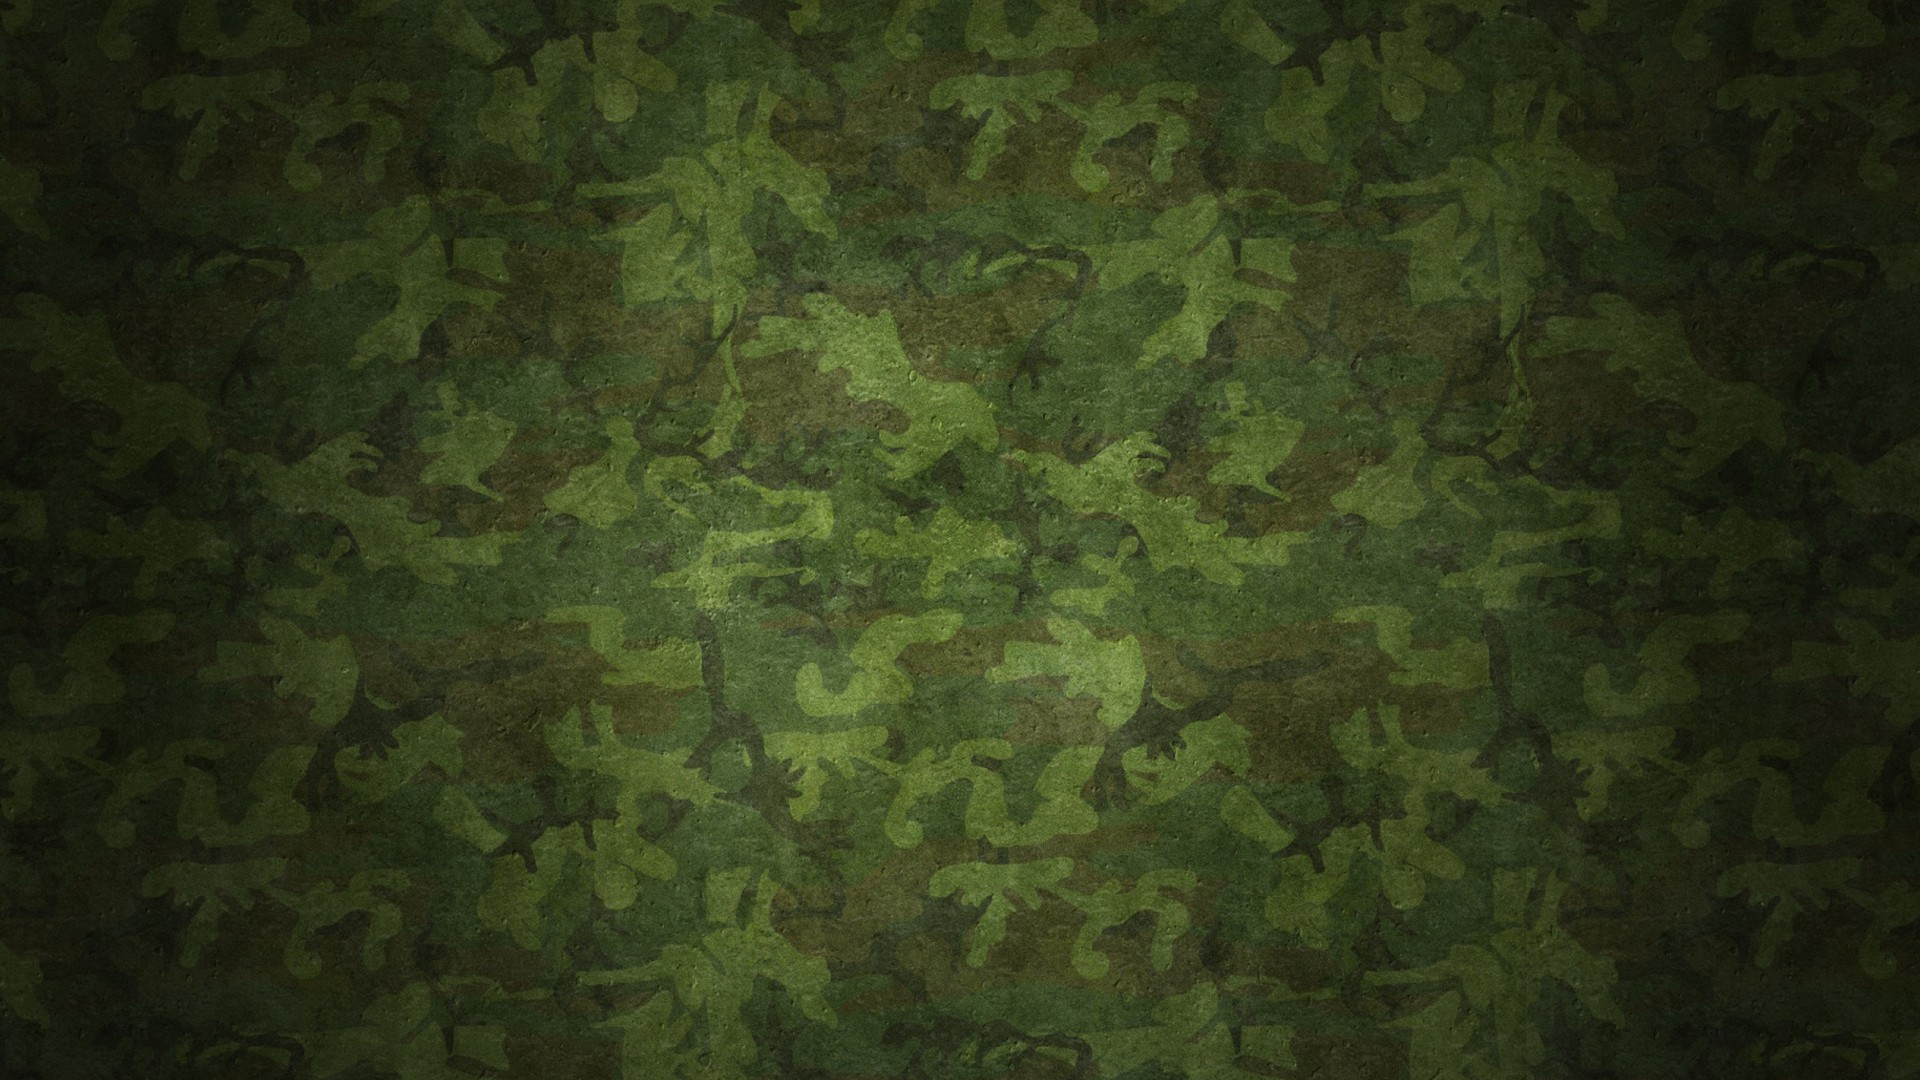 Military patterns camouflage wallpaper 1920x1080 184182 1920x1080